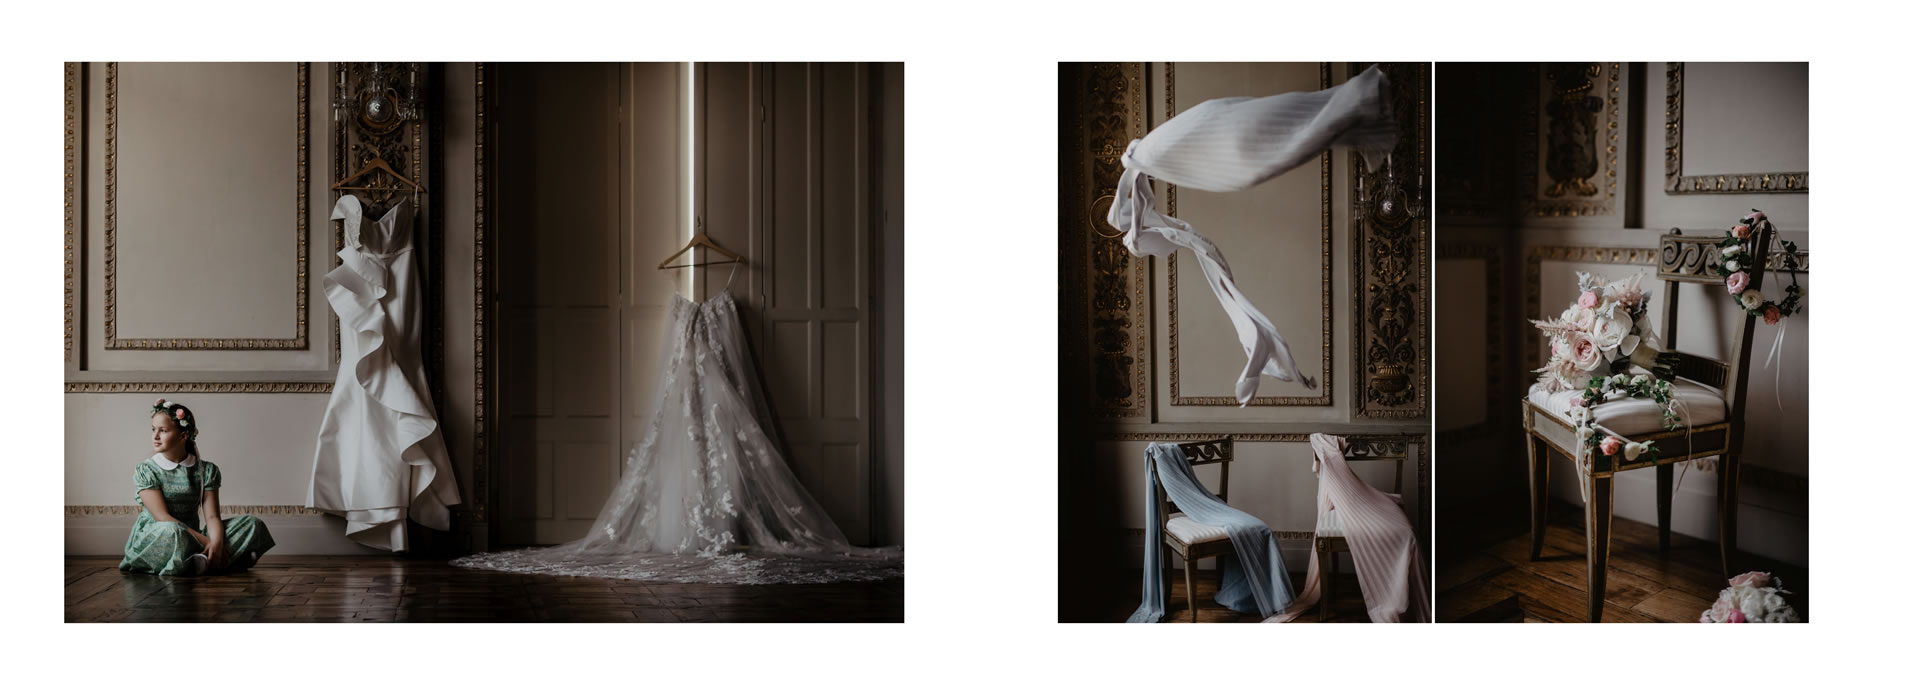 - 1 :: BEST OF 2018 WEDDING: A COLLECTION TO TELL ONE YEAR STORY :: Luxury wedding photography - 0 ::  - 1